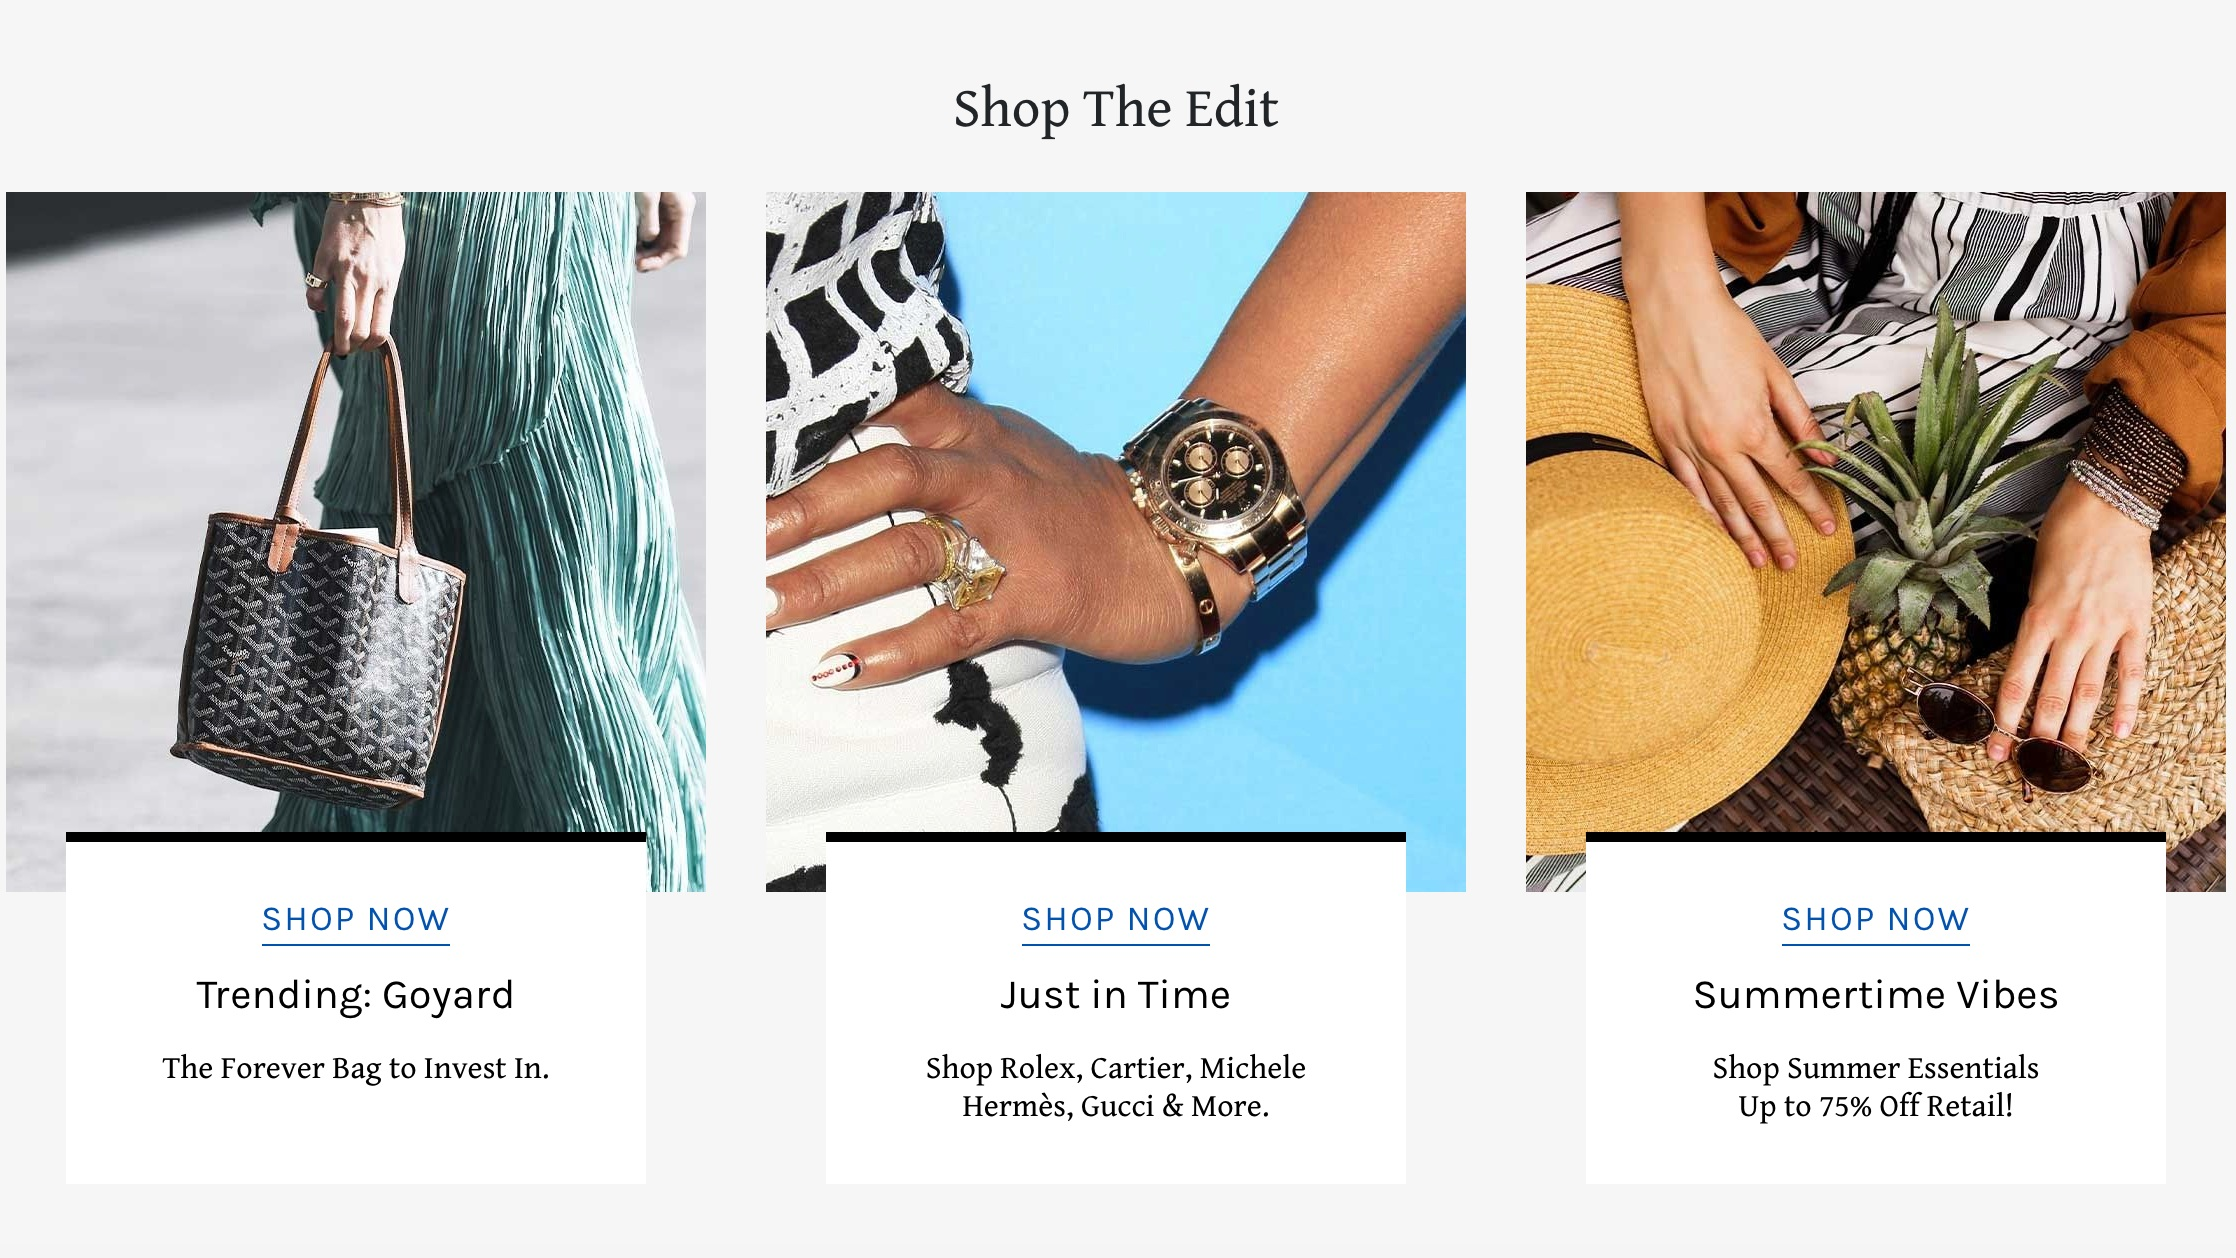 LePrix - LePrix.com offers access to carefully selected consignment and vintage boutiques around the world and also allows individual sellers to consign… that's if you have authentic, pre-owned luxury like Louis Vuitton, Hermes, Chanel, or Gucci.